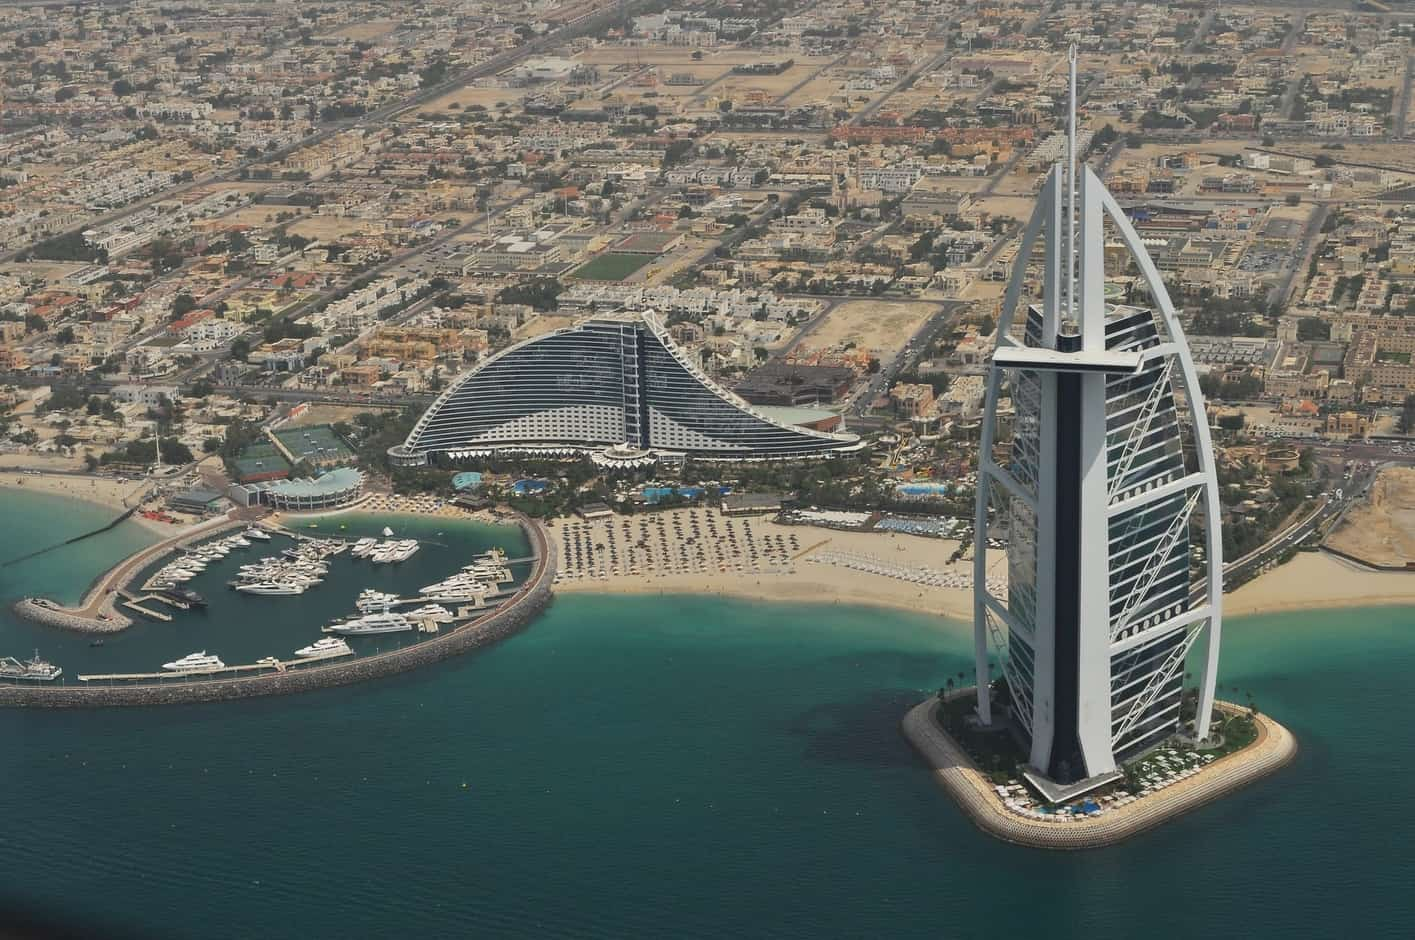 Is the United Arab Emirates open for tourism